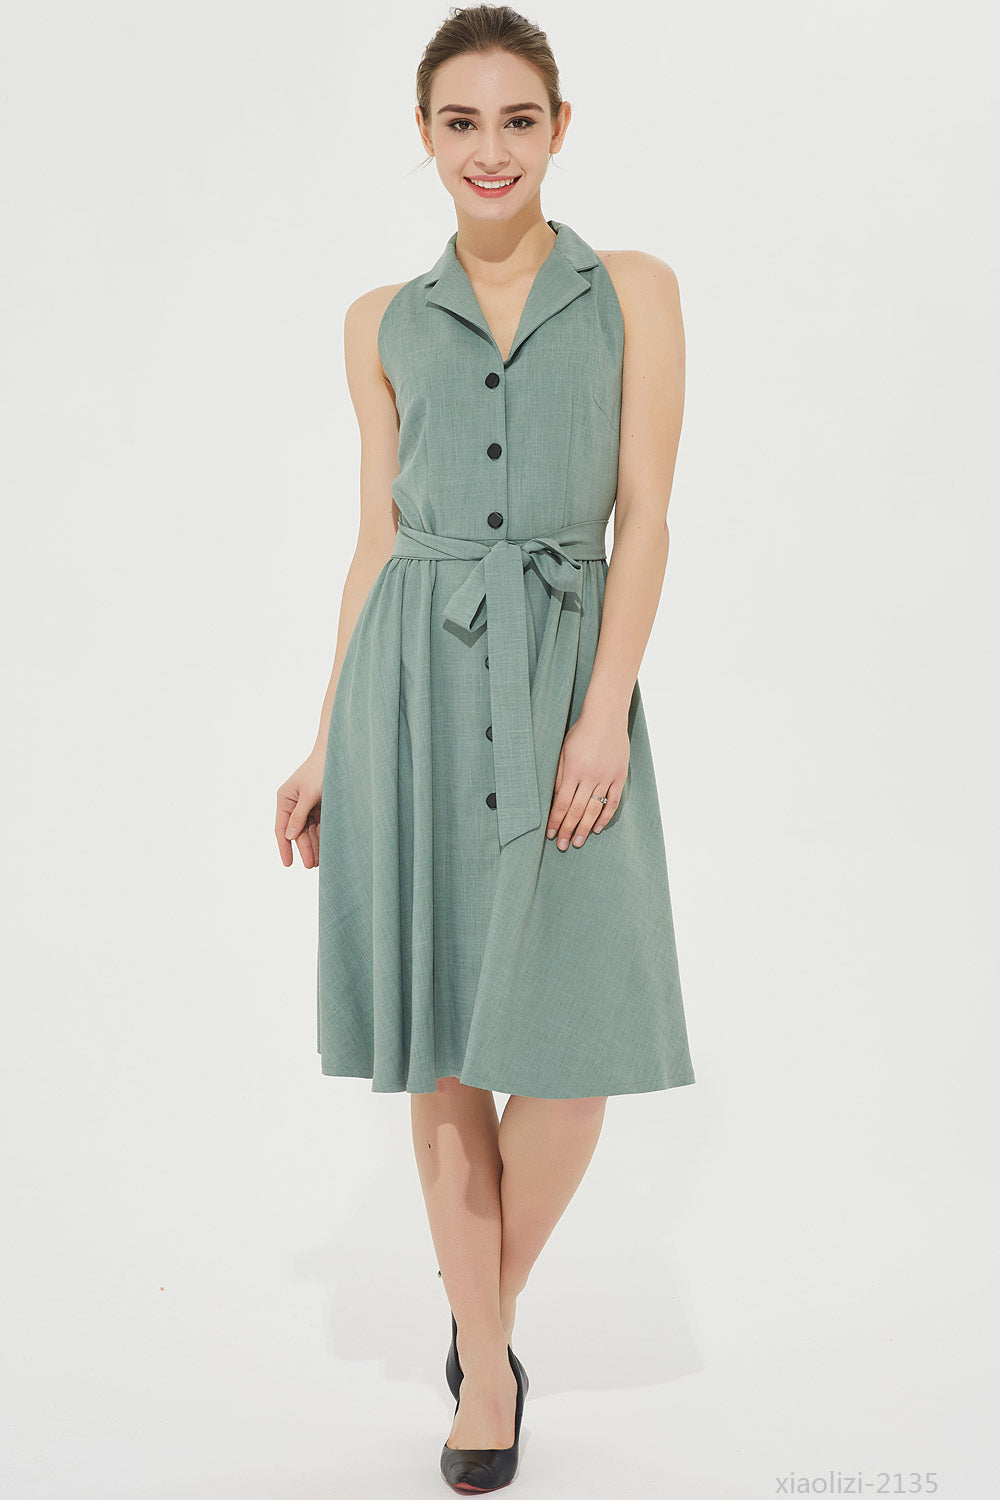 sleeveless shirt dress with self tie belt 2135#